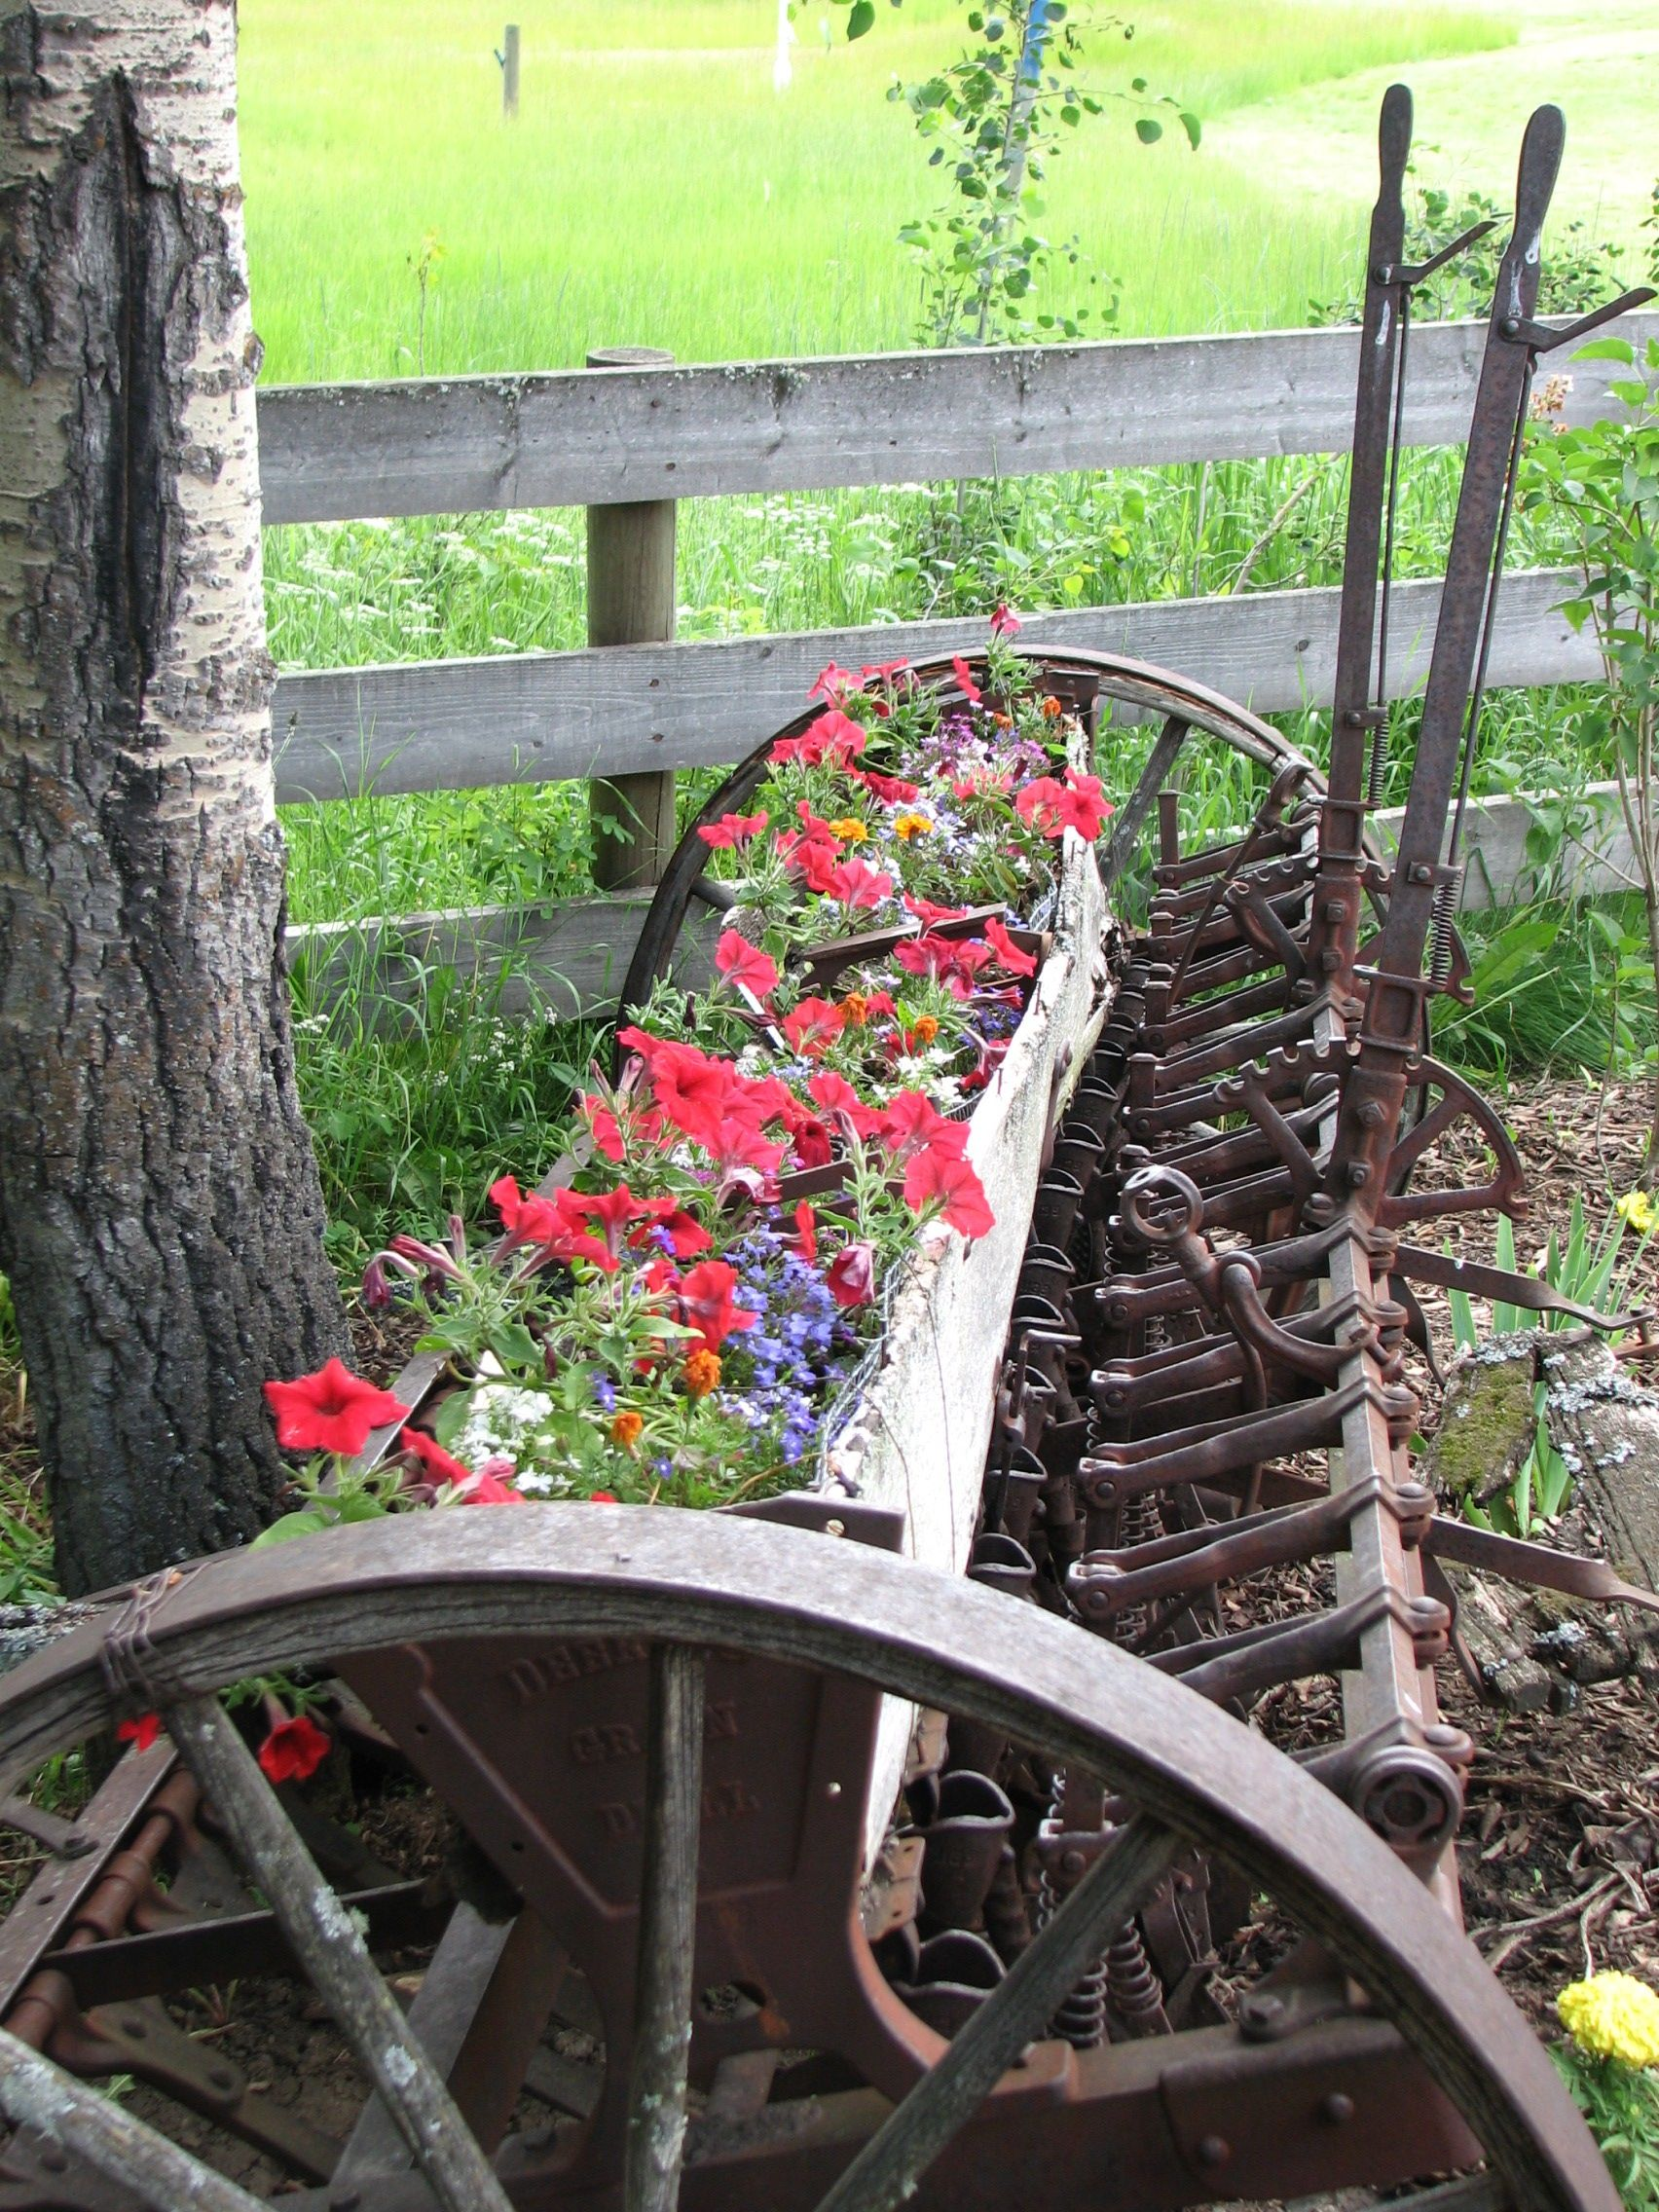 Rustic farm equipment with flowers whimsical garden for Outdoor garden equipment